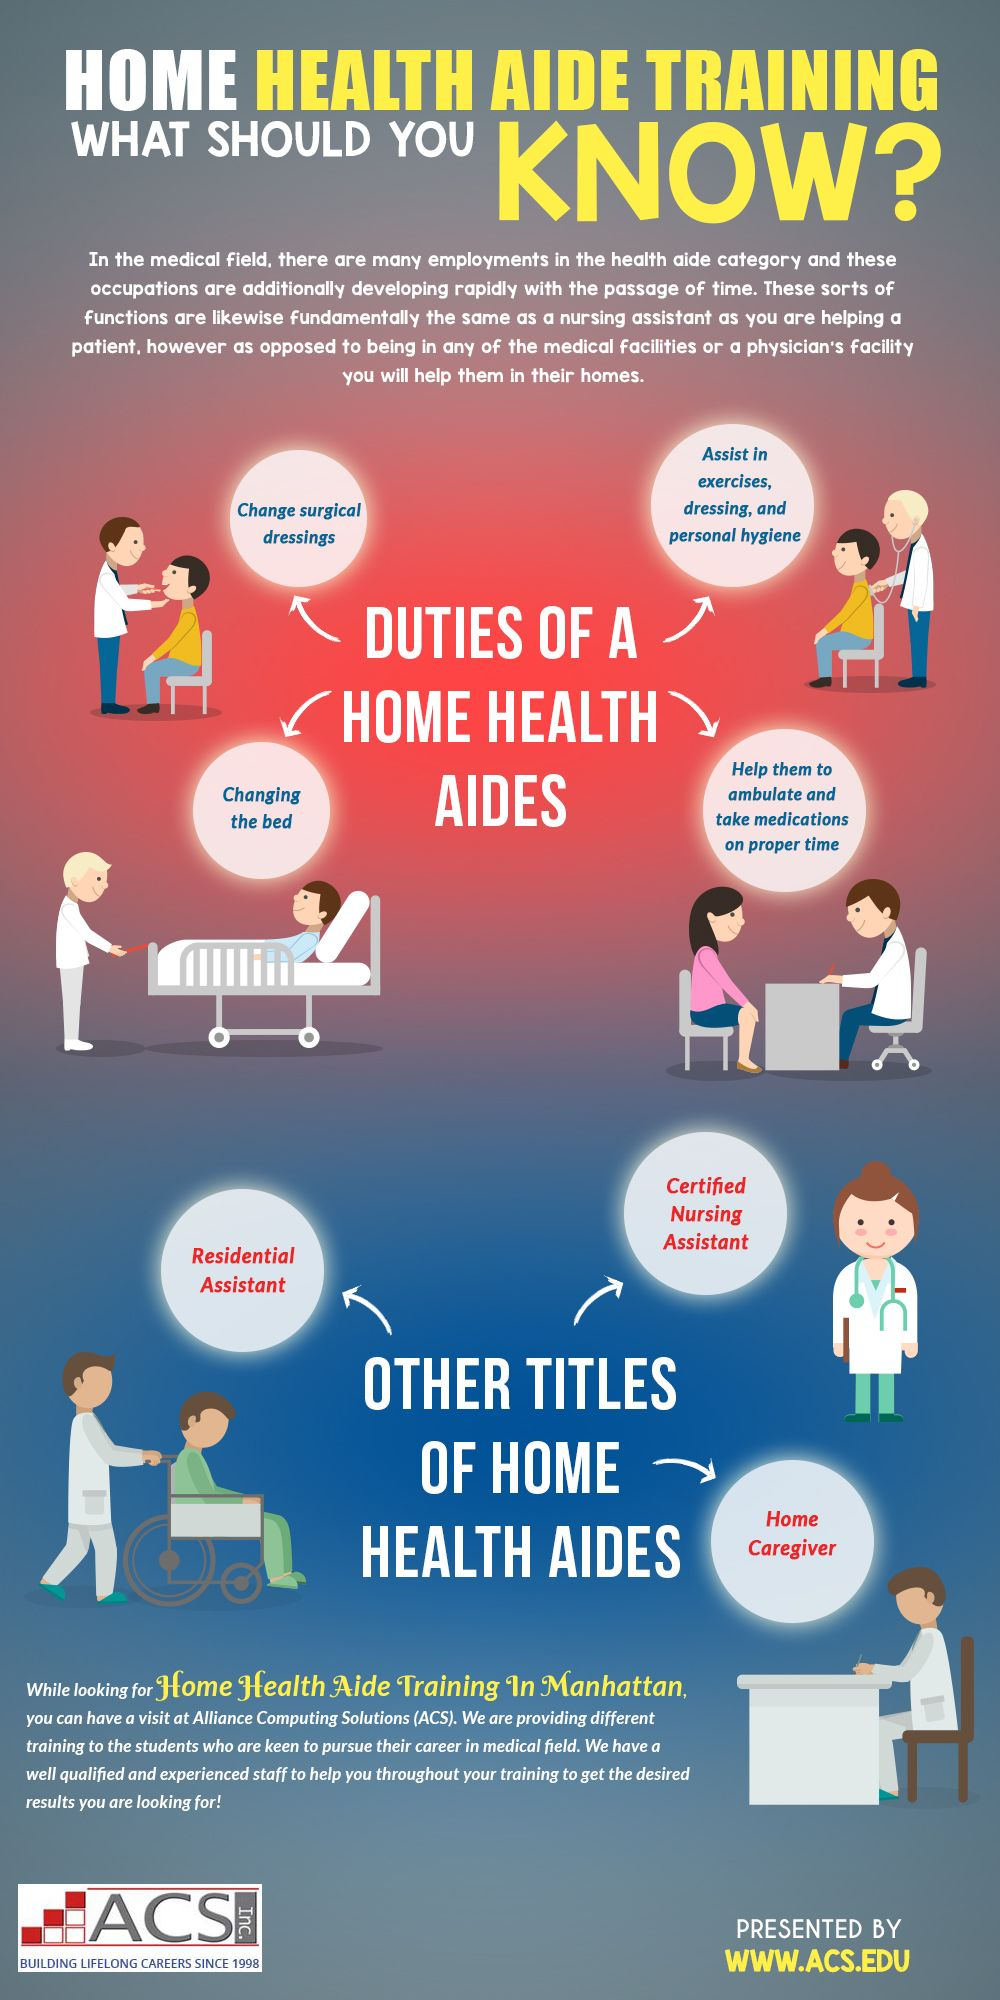 Acs Home Health Aide Training Centre In New York City Home Health Aide Home Health Home Health Care